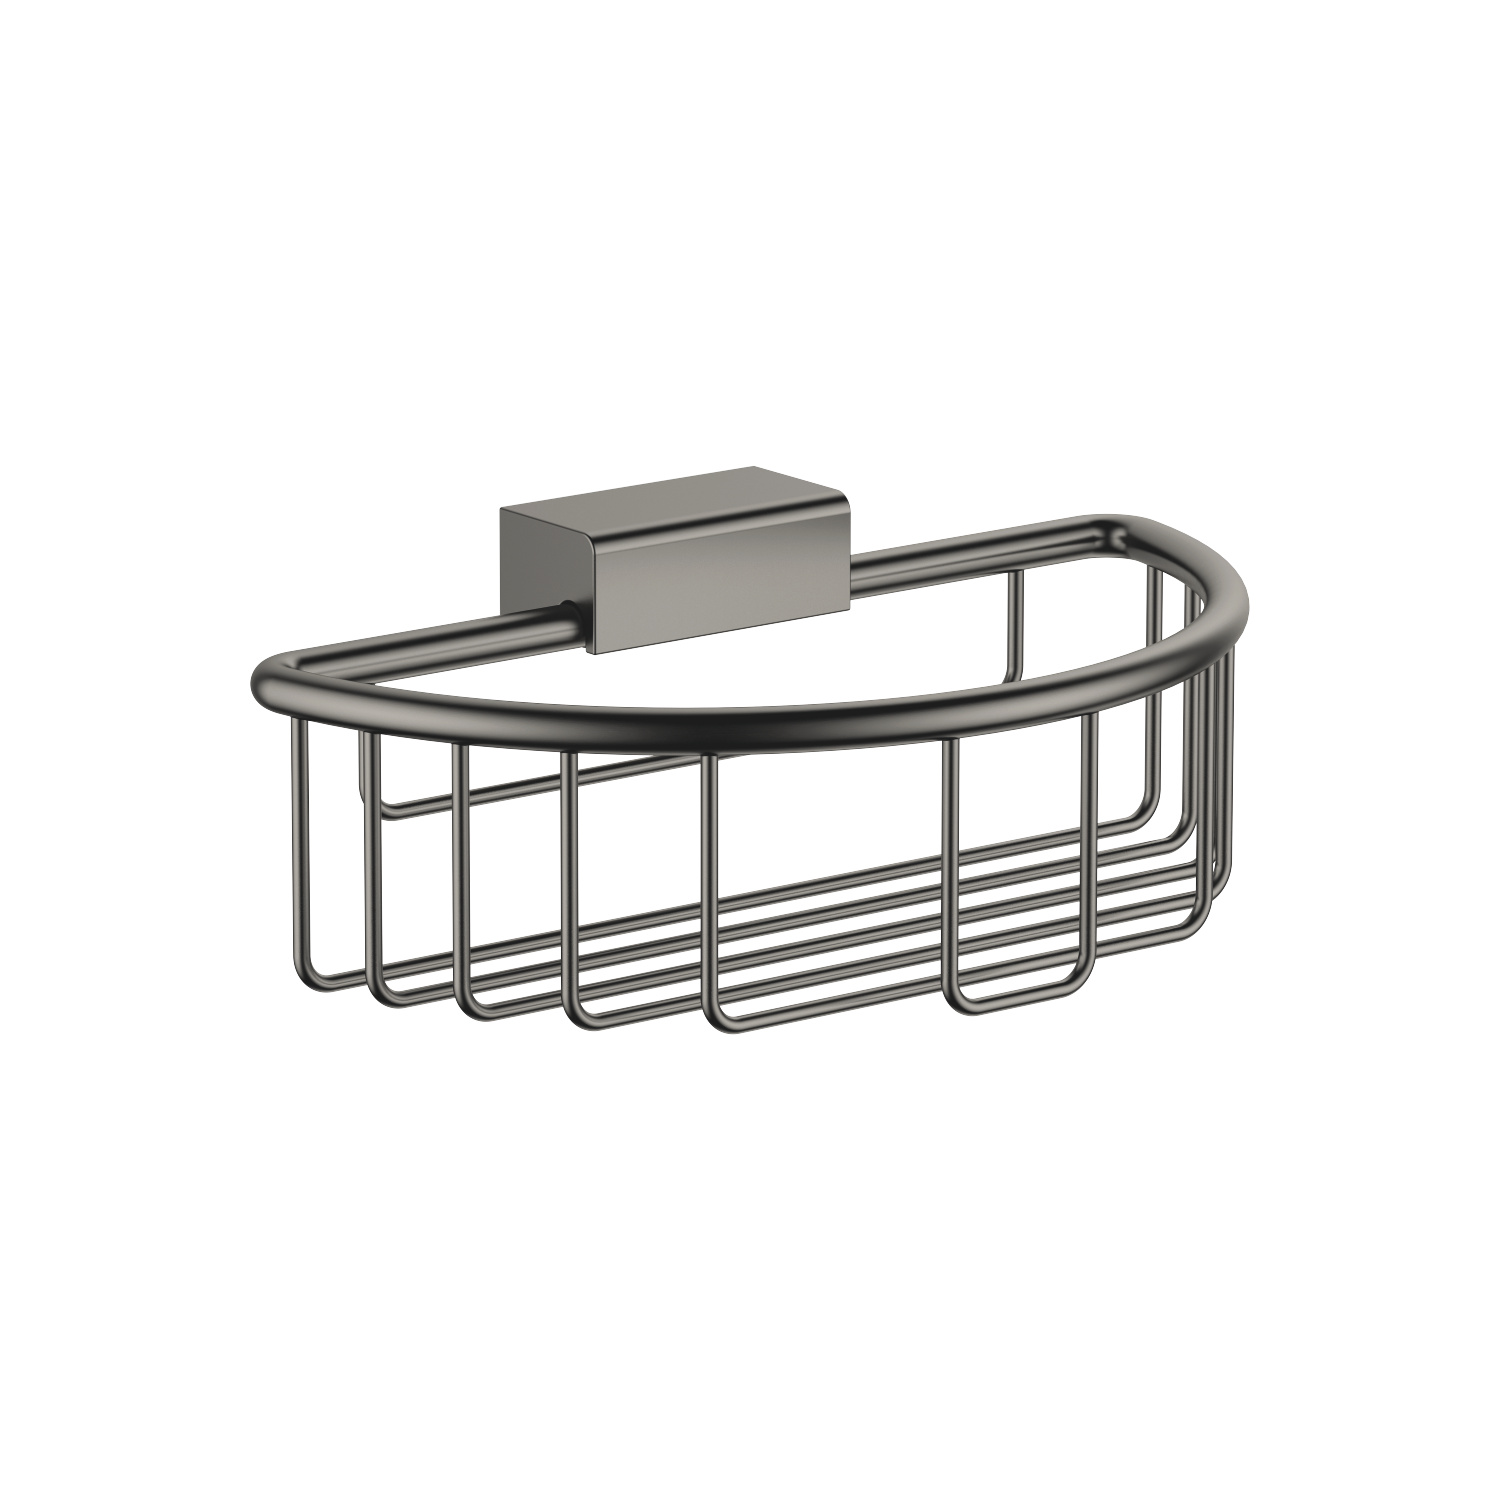 Shower basket for wall mounting - Dark Platinum matt